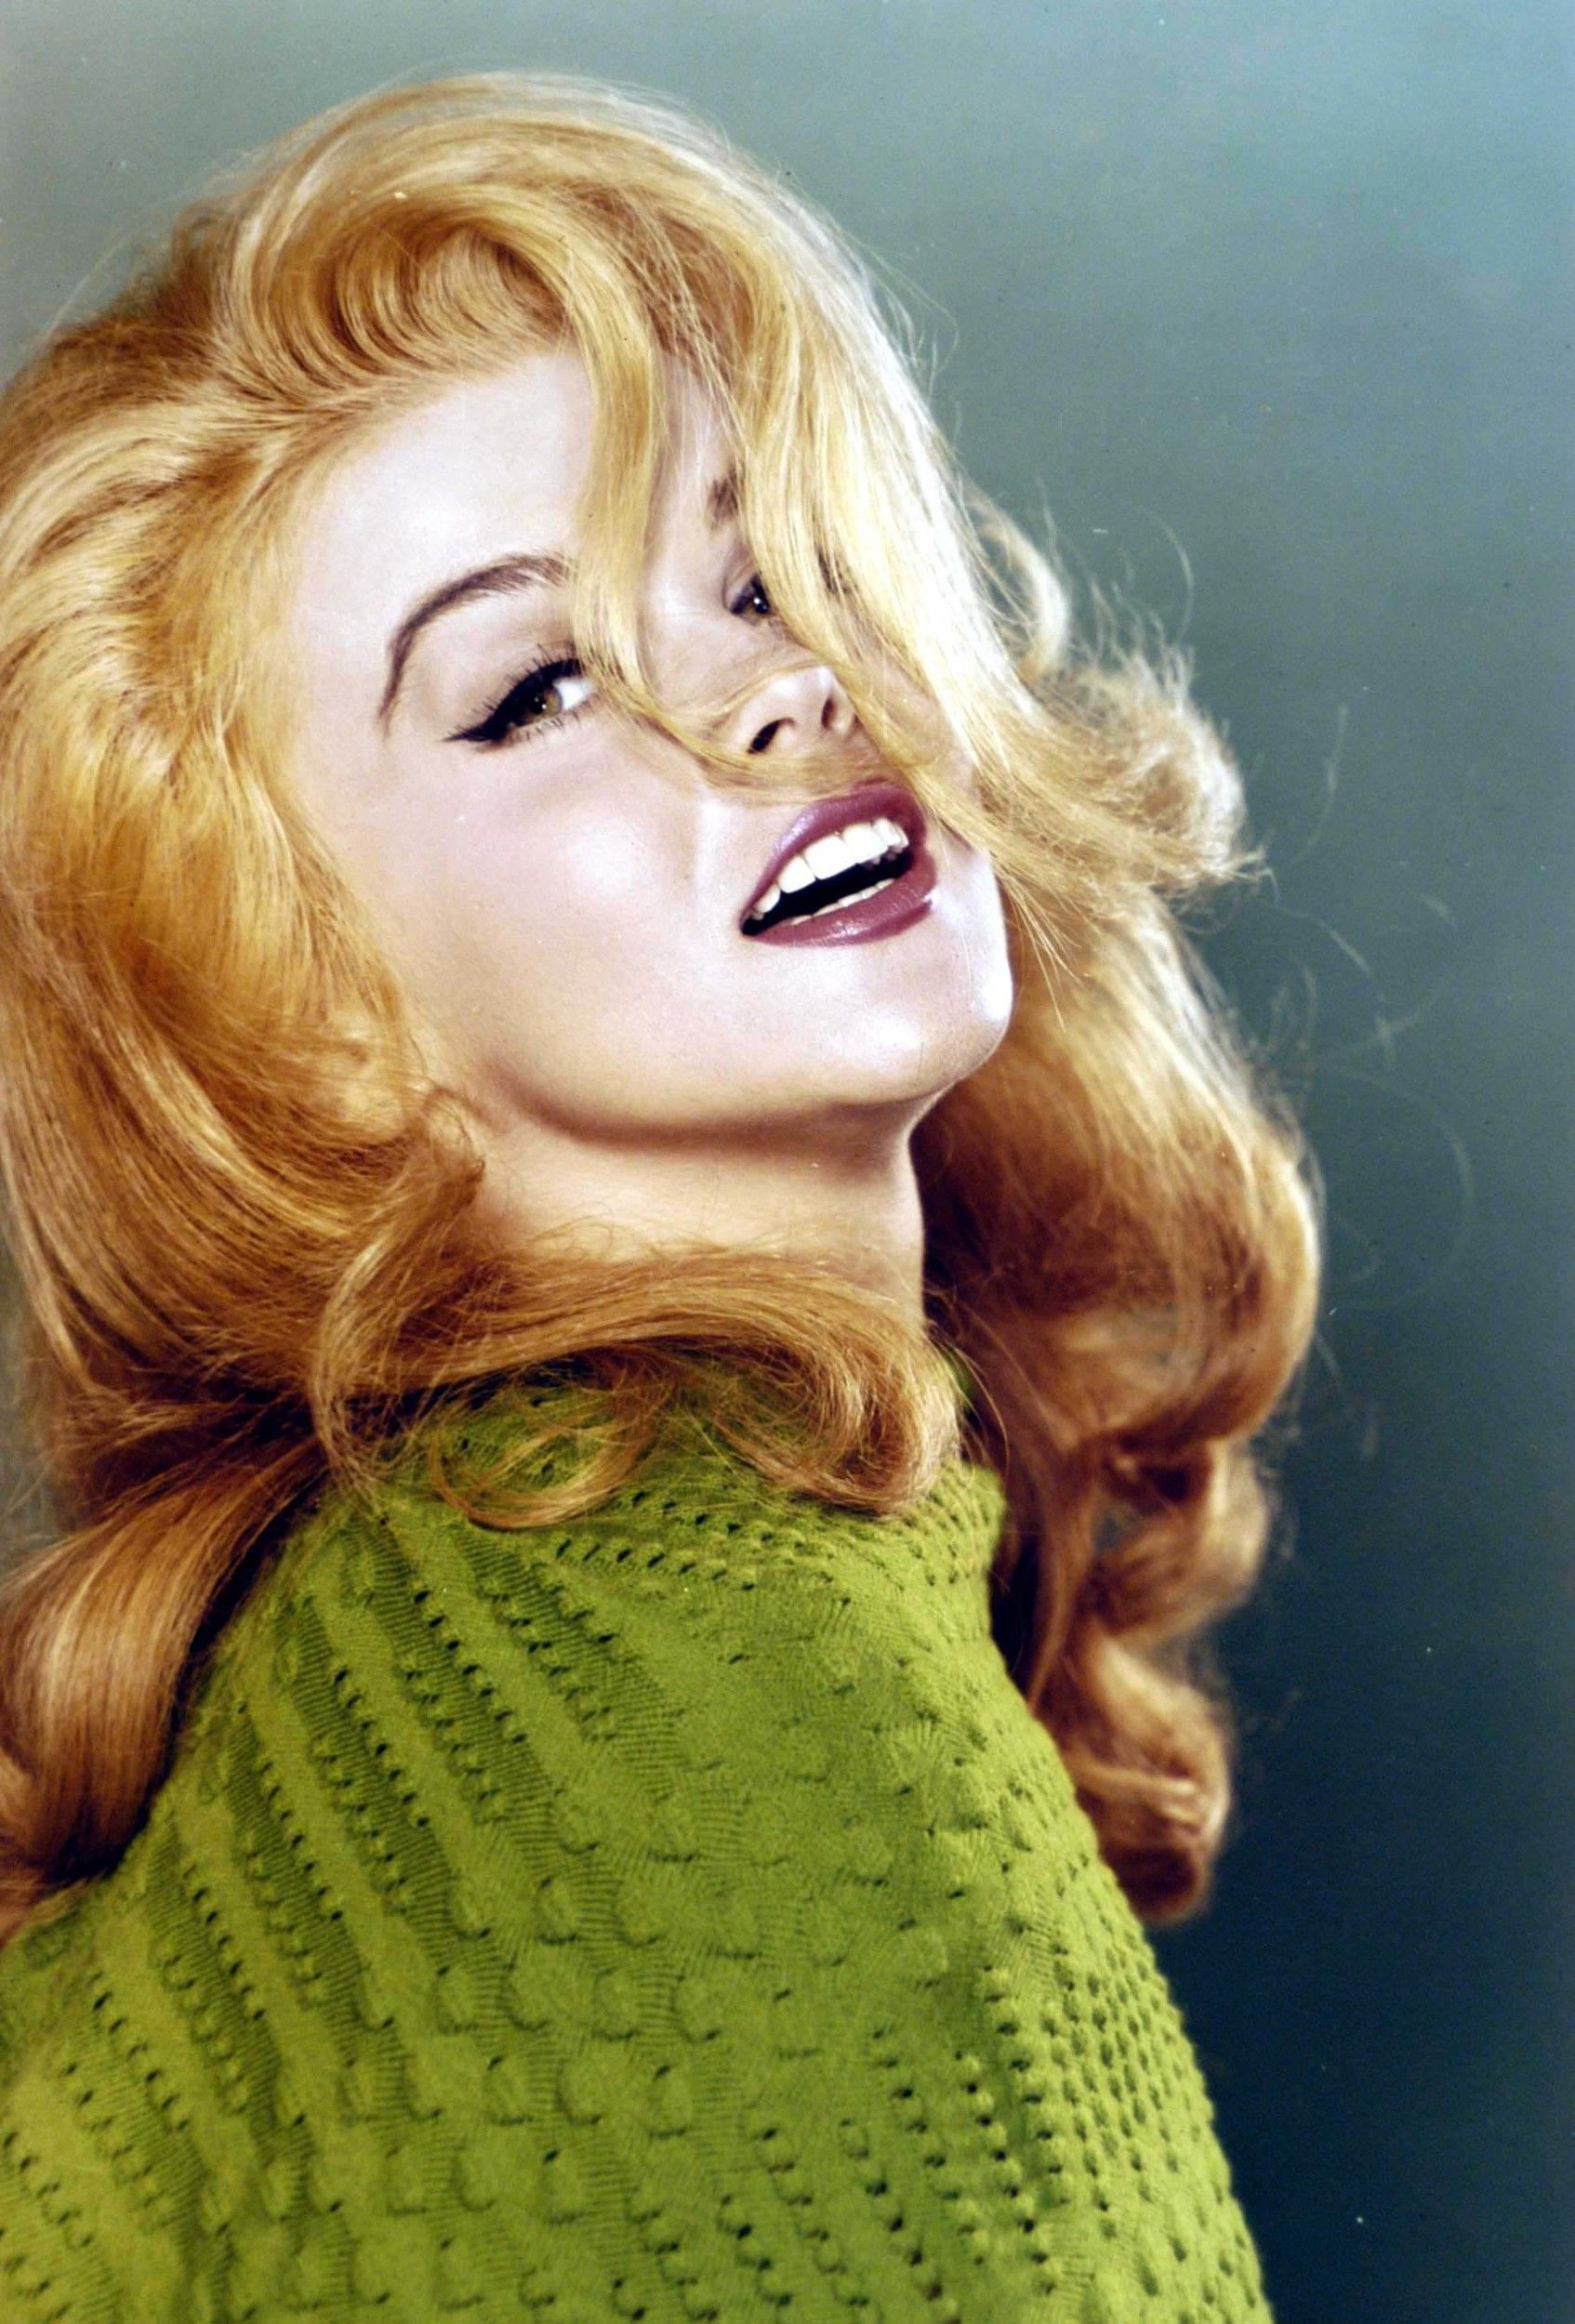 Ann-Margret is still a beauty at 78: See her then and now